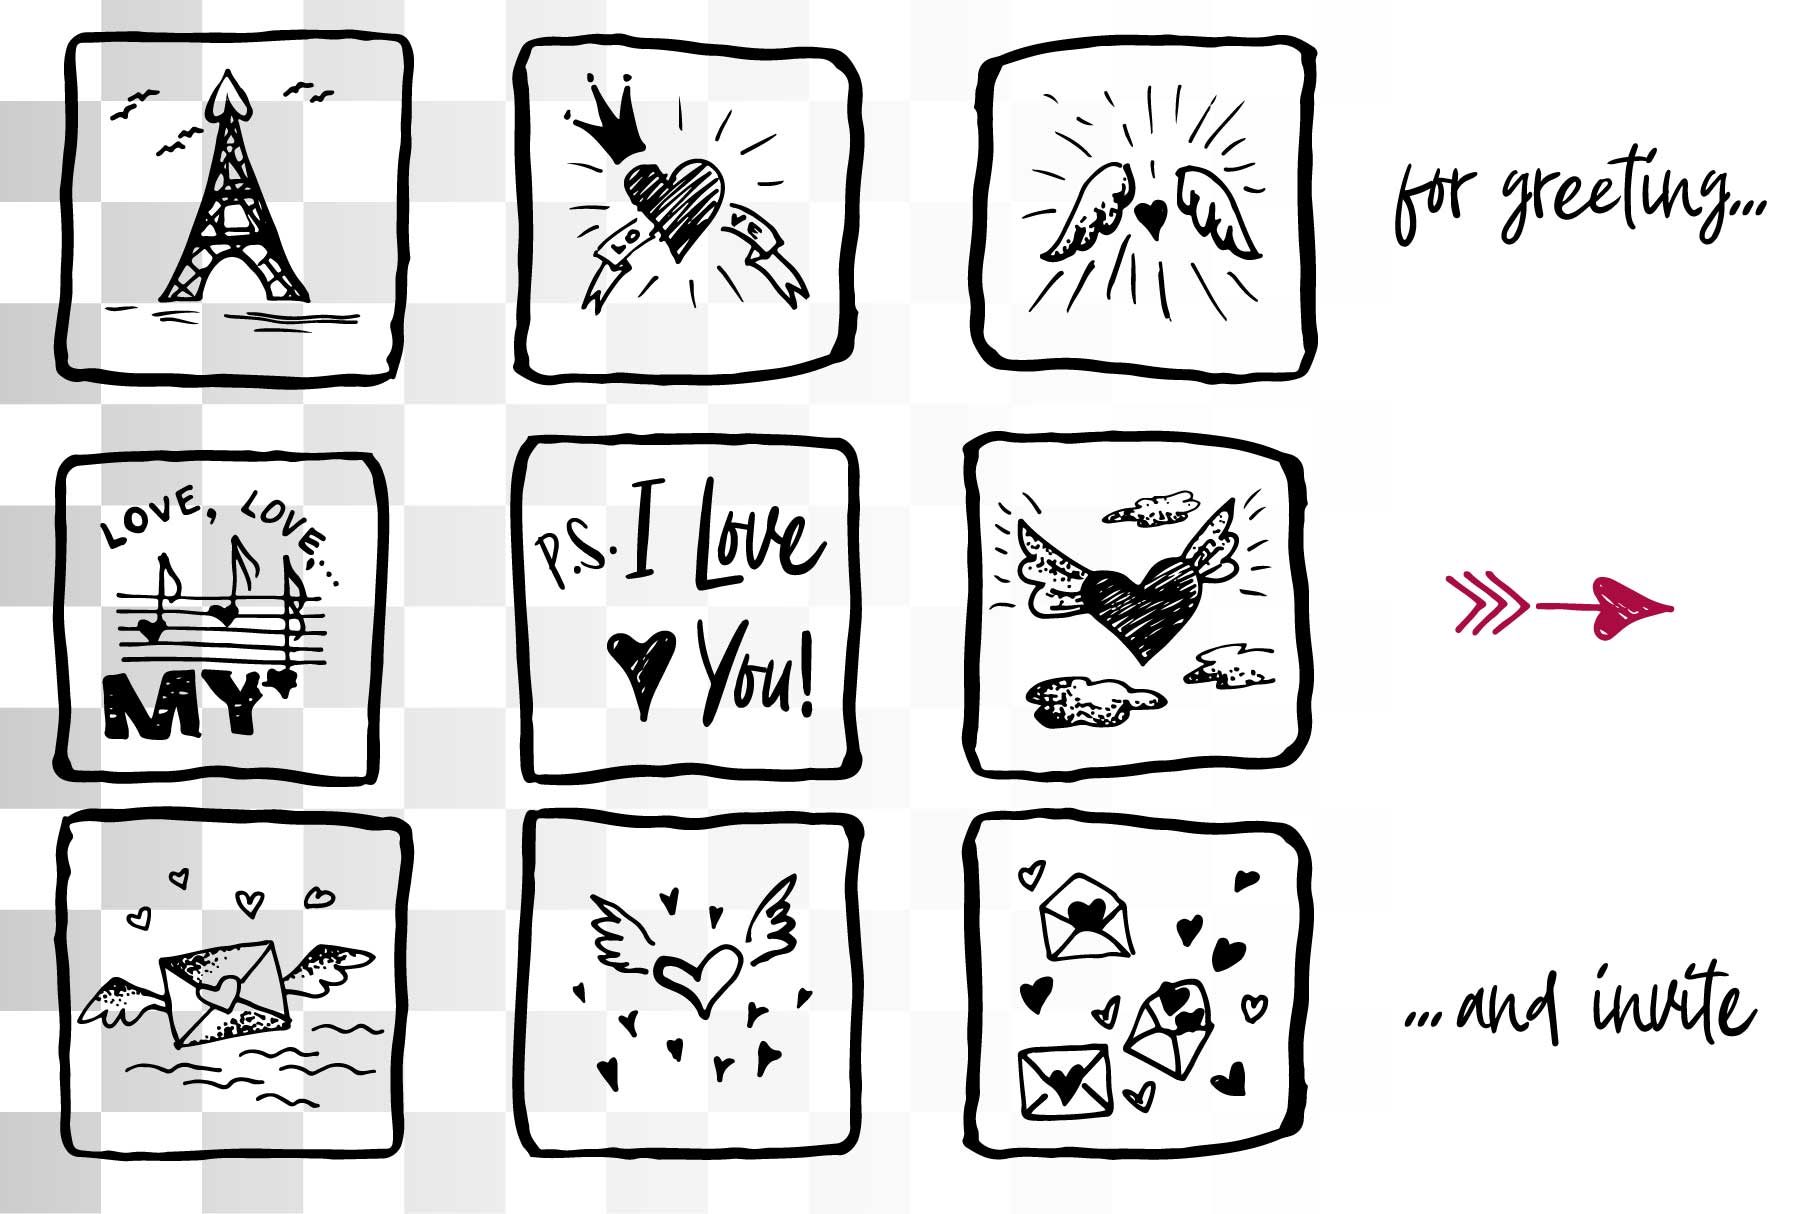 Lovely valentines day set - #5 SVG collection example image 3